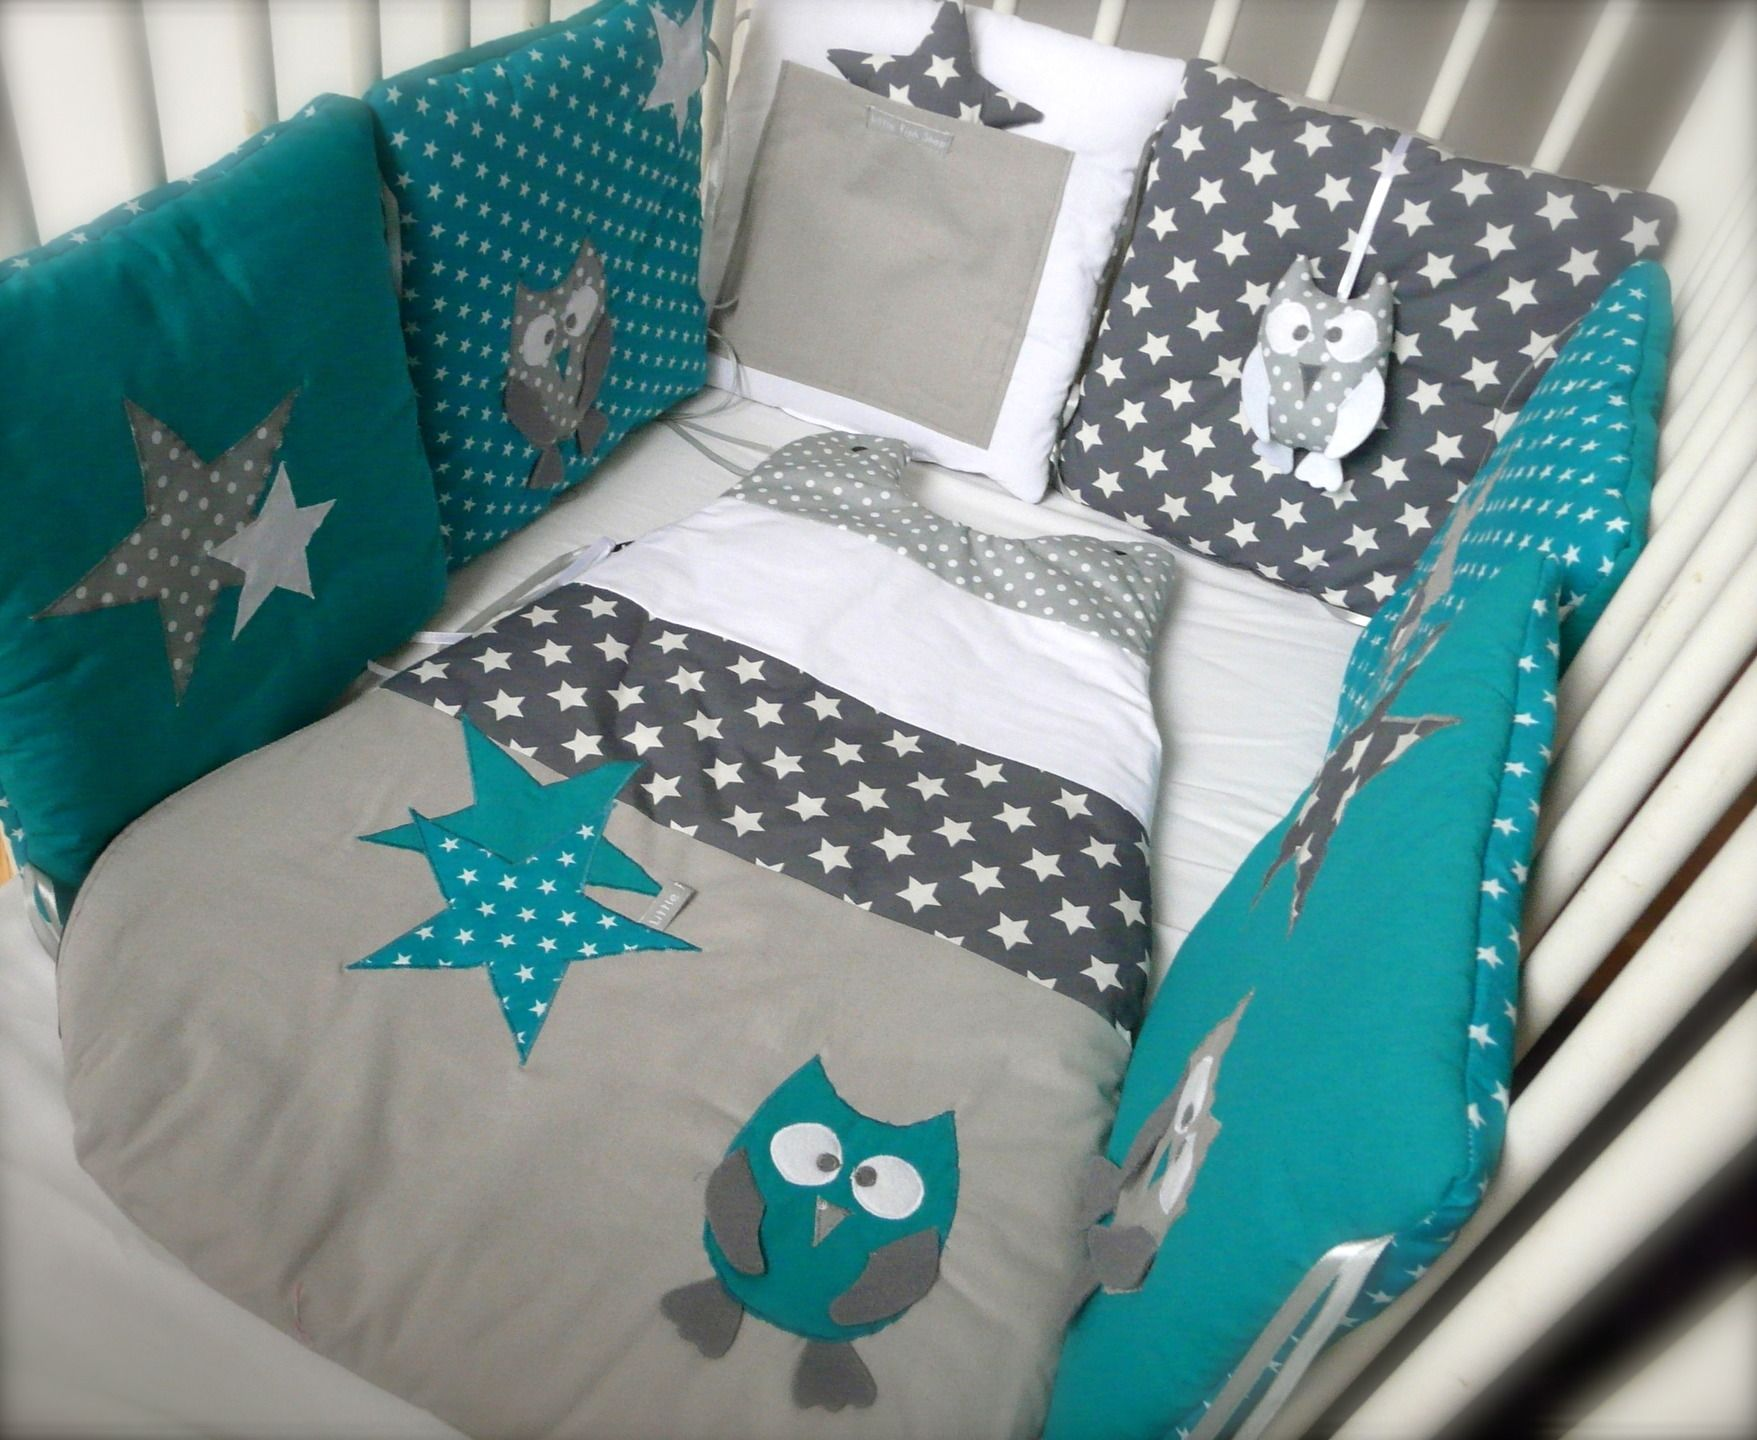 tour de lit chouettes et toiles bleu canard et gris accessoires b b pinterest baby. Black Bedroom Furniture Sets. Home Design Ideas